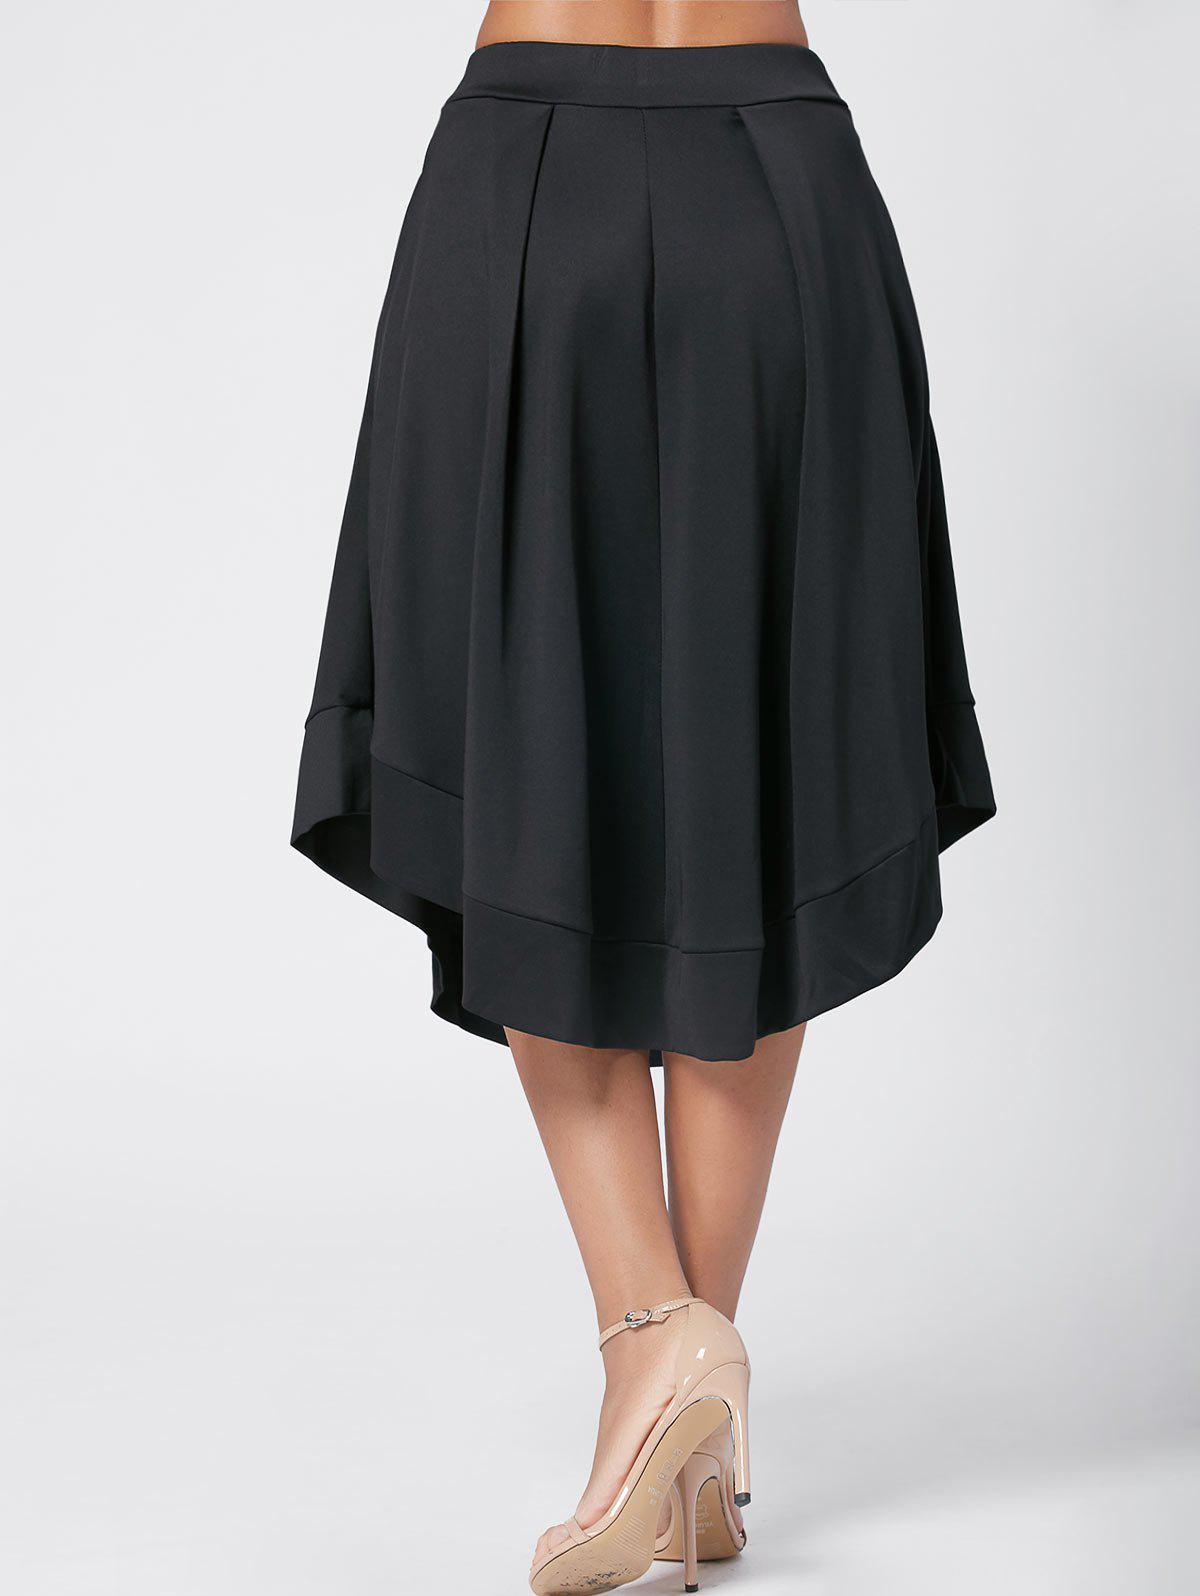 High Waist Midi Flared Skirt - BLACK 2XL